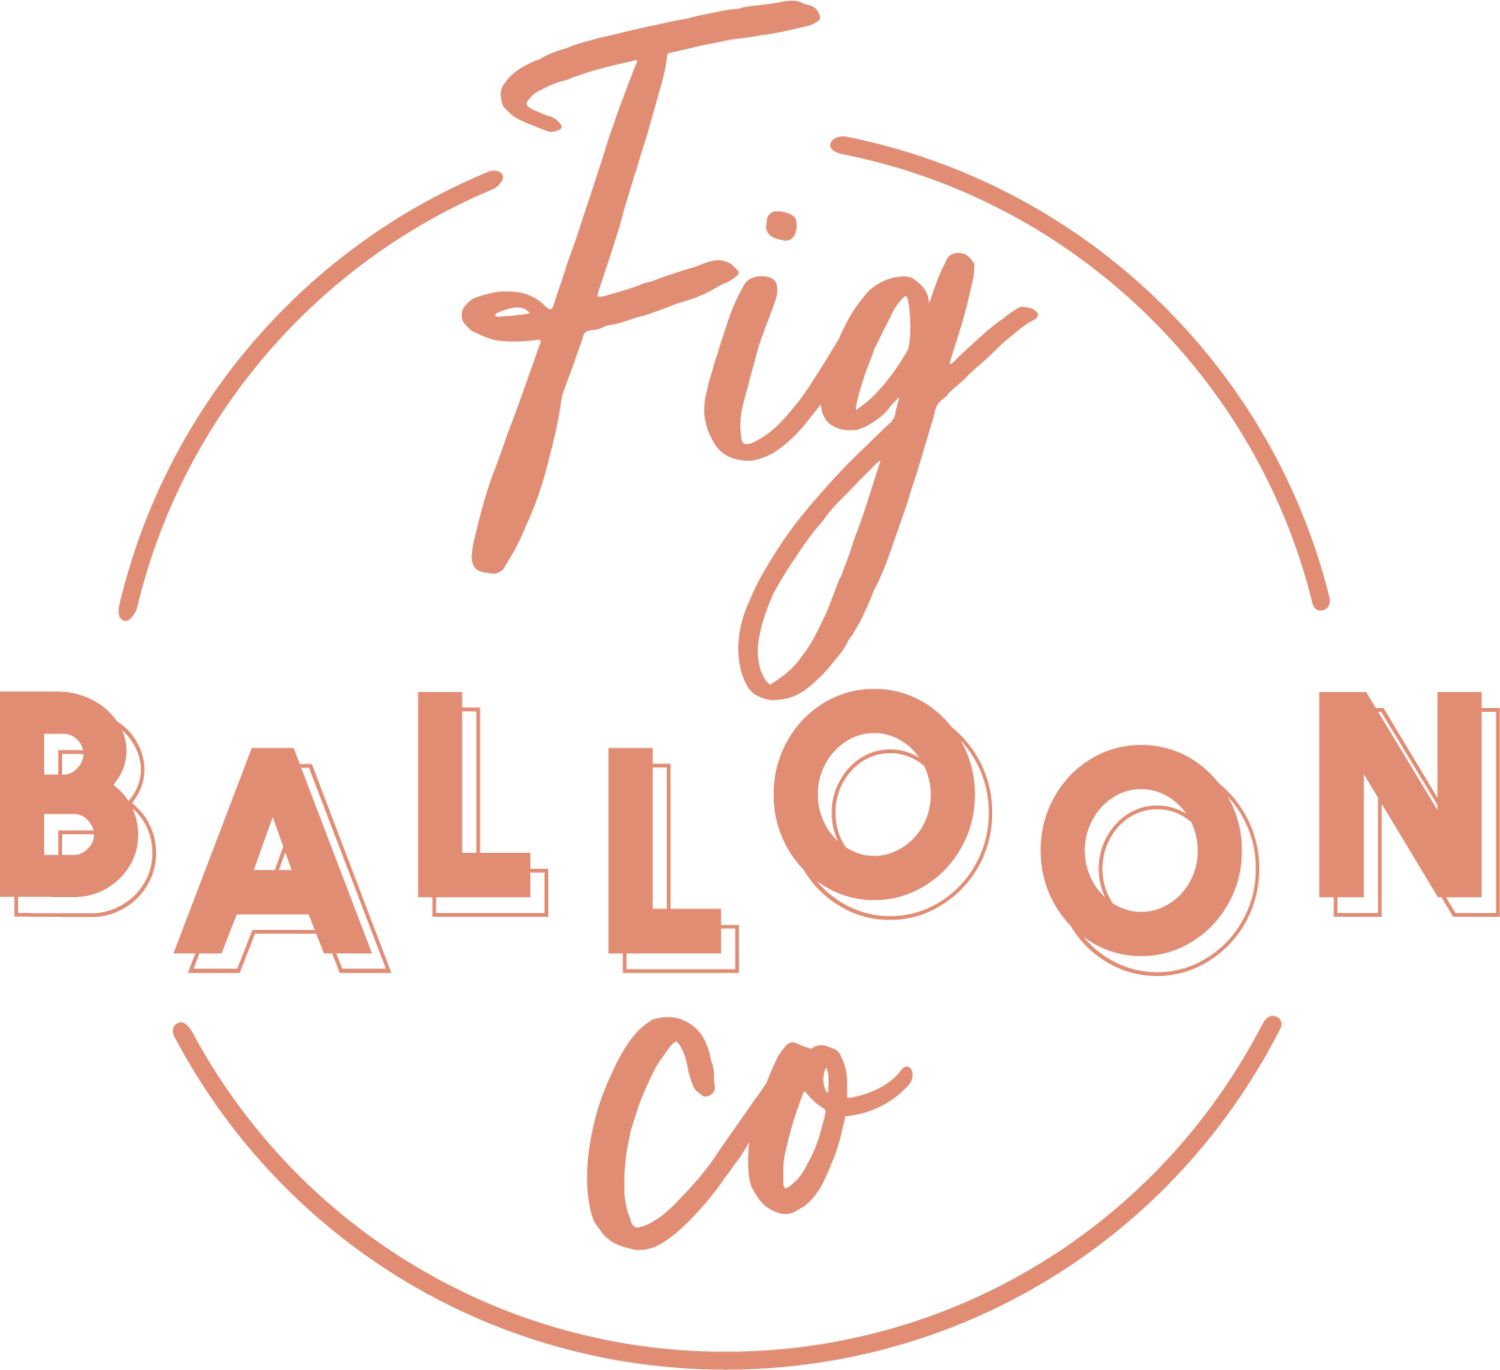 FIG BALLOON CO